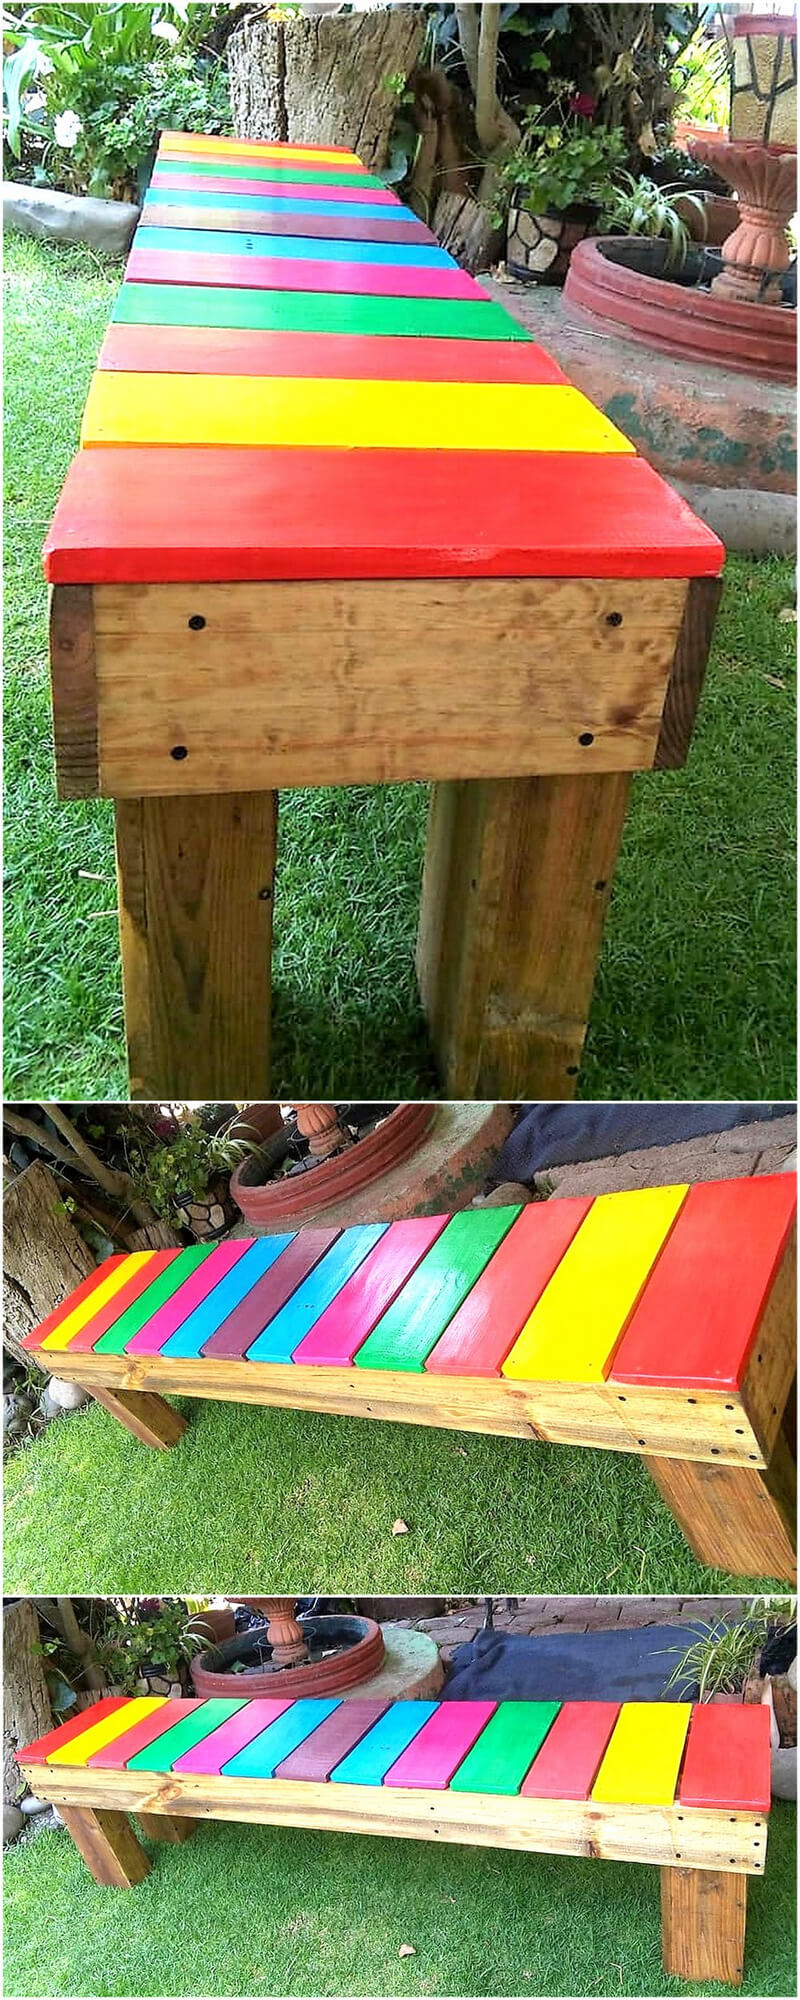 wooden pallet patio garden bench